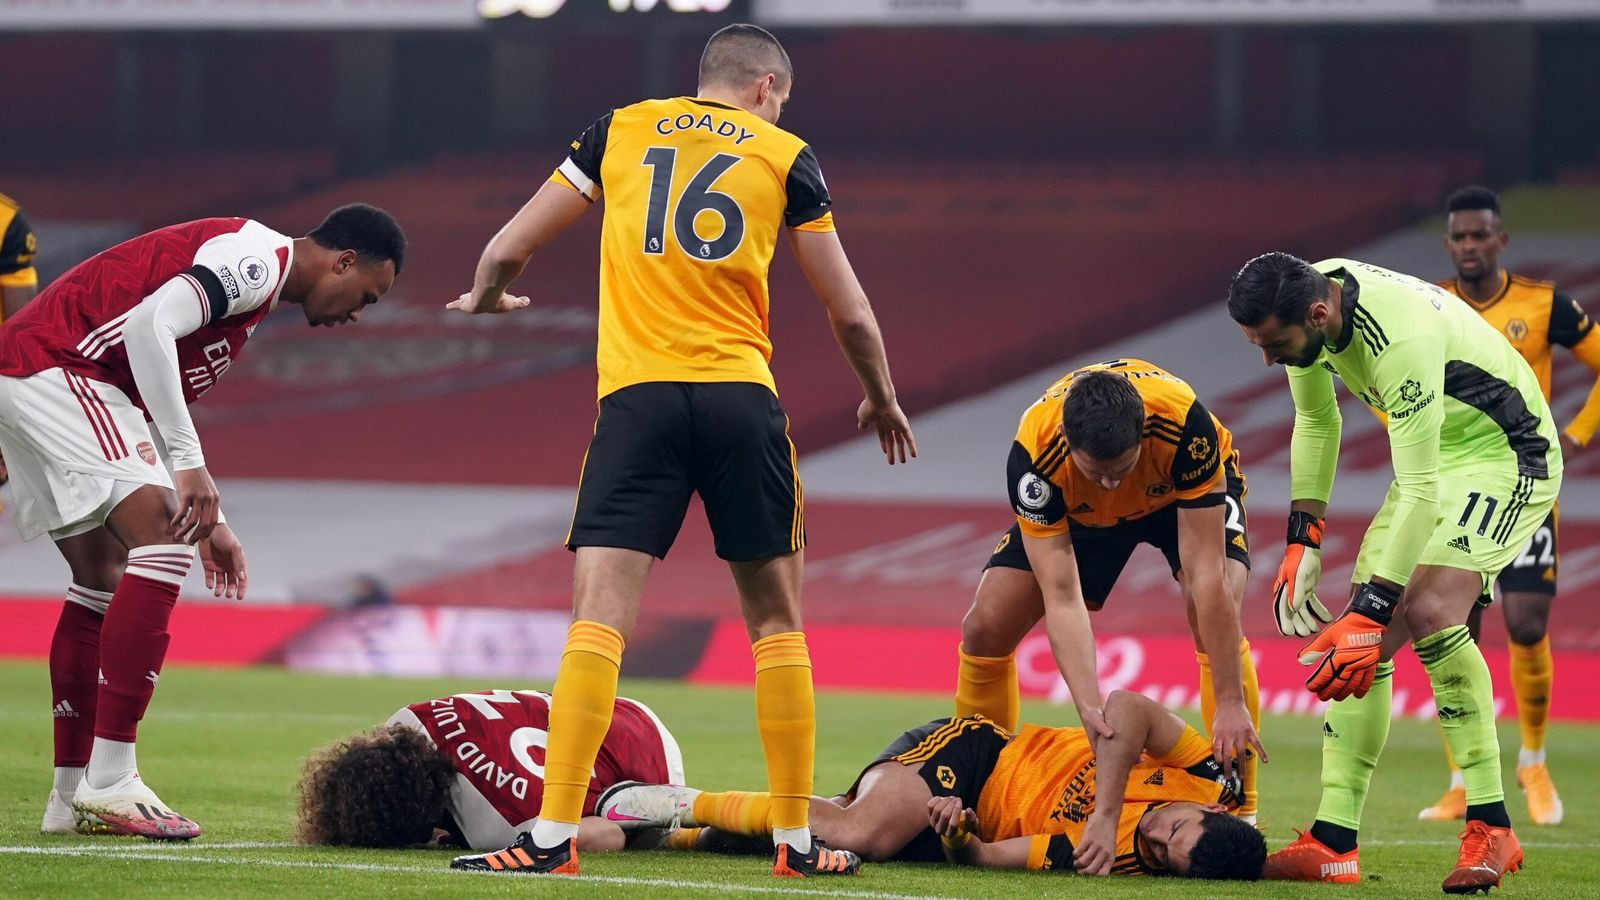 Raul Jimenez undergoes surgery after head clash with David Luis in Arsenal game*